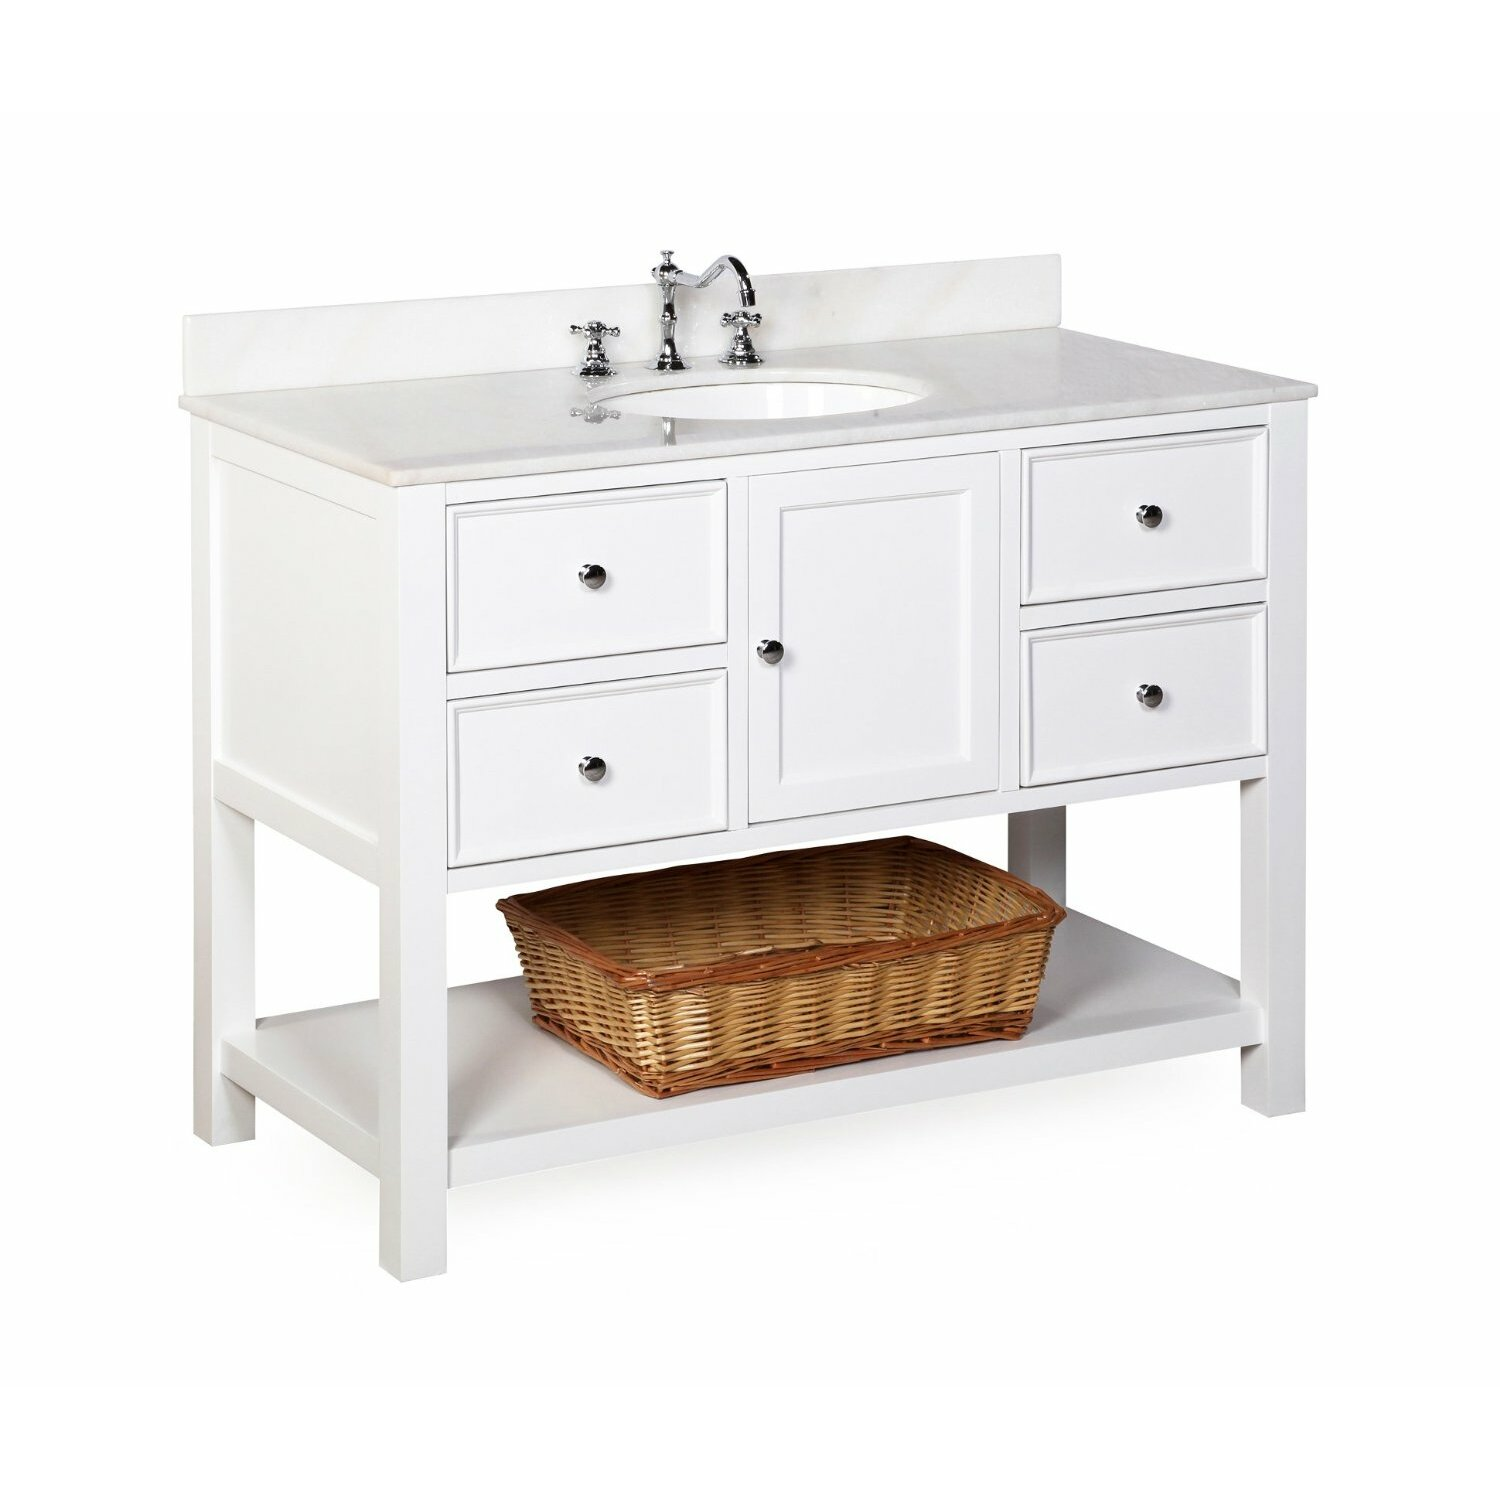 Kbc new yorker 48 single bathroom vanity set reviews for Bath and vanity set